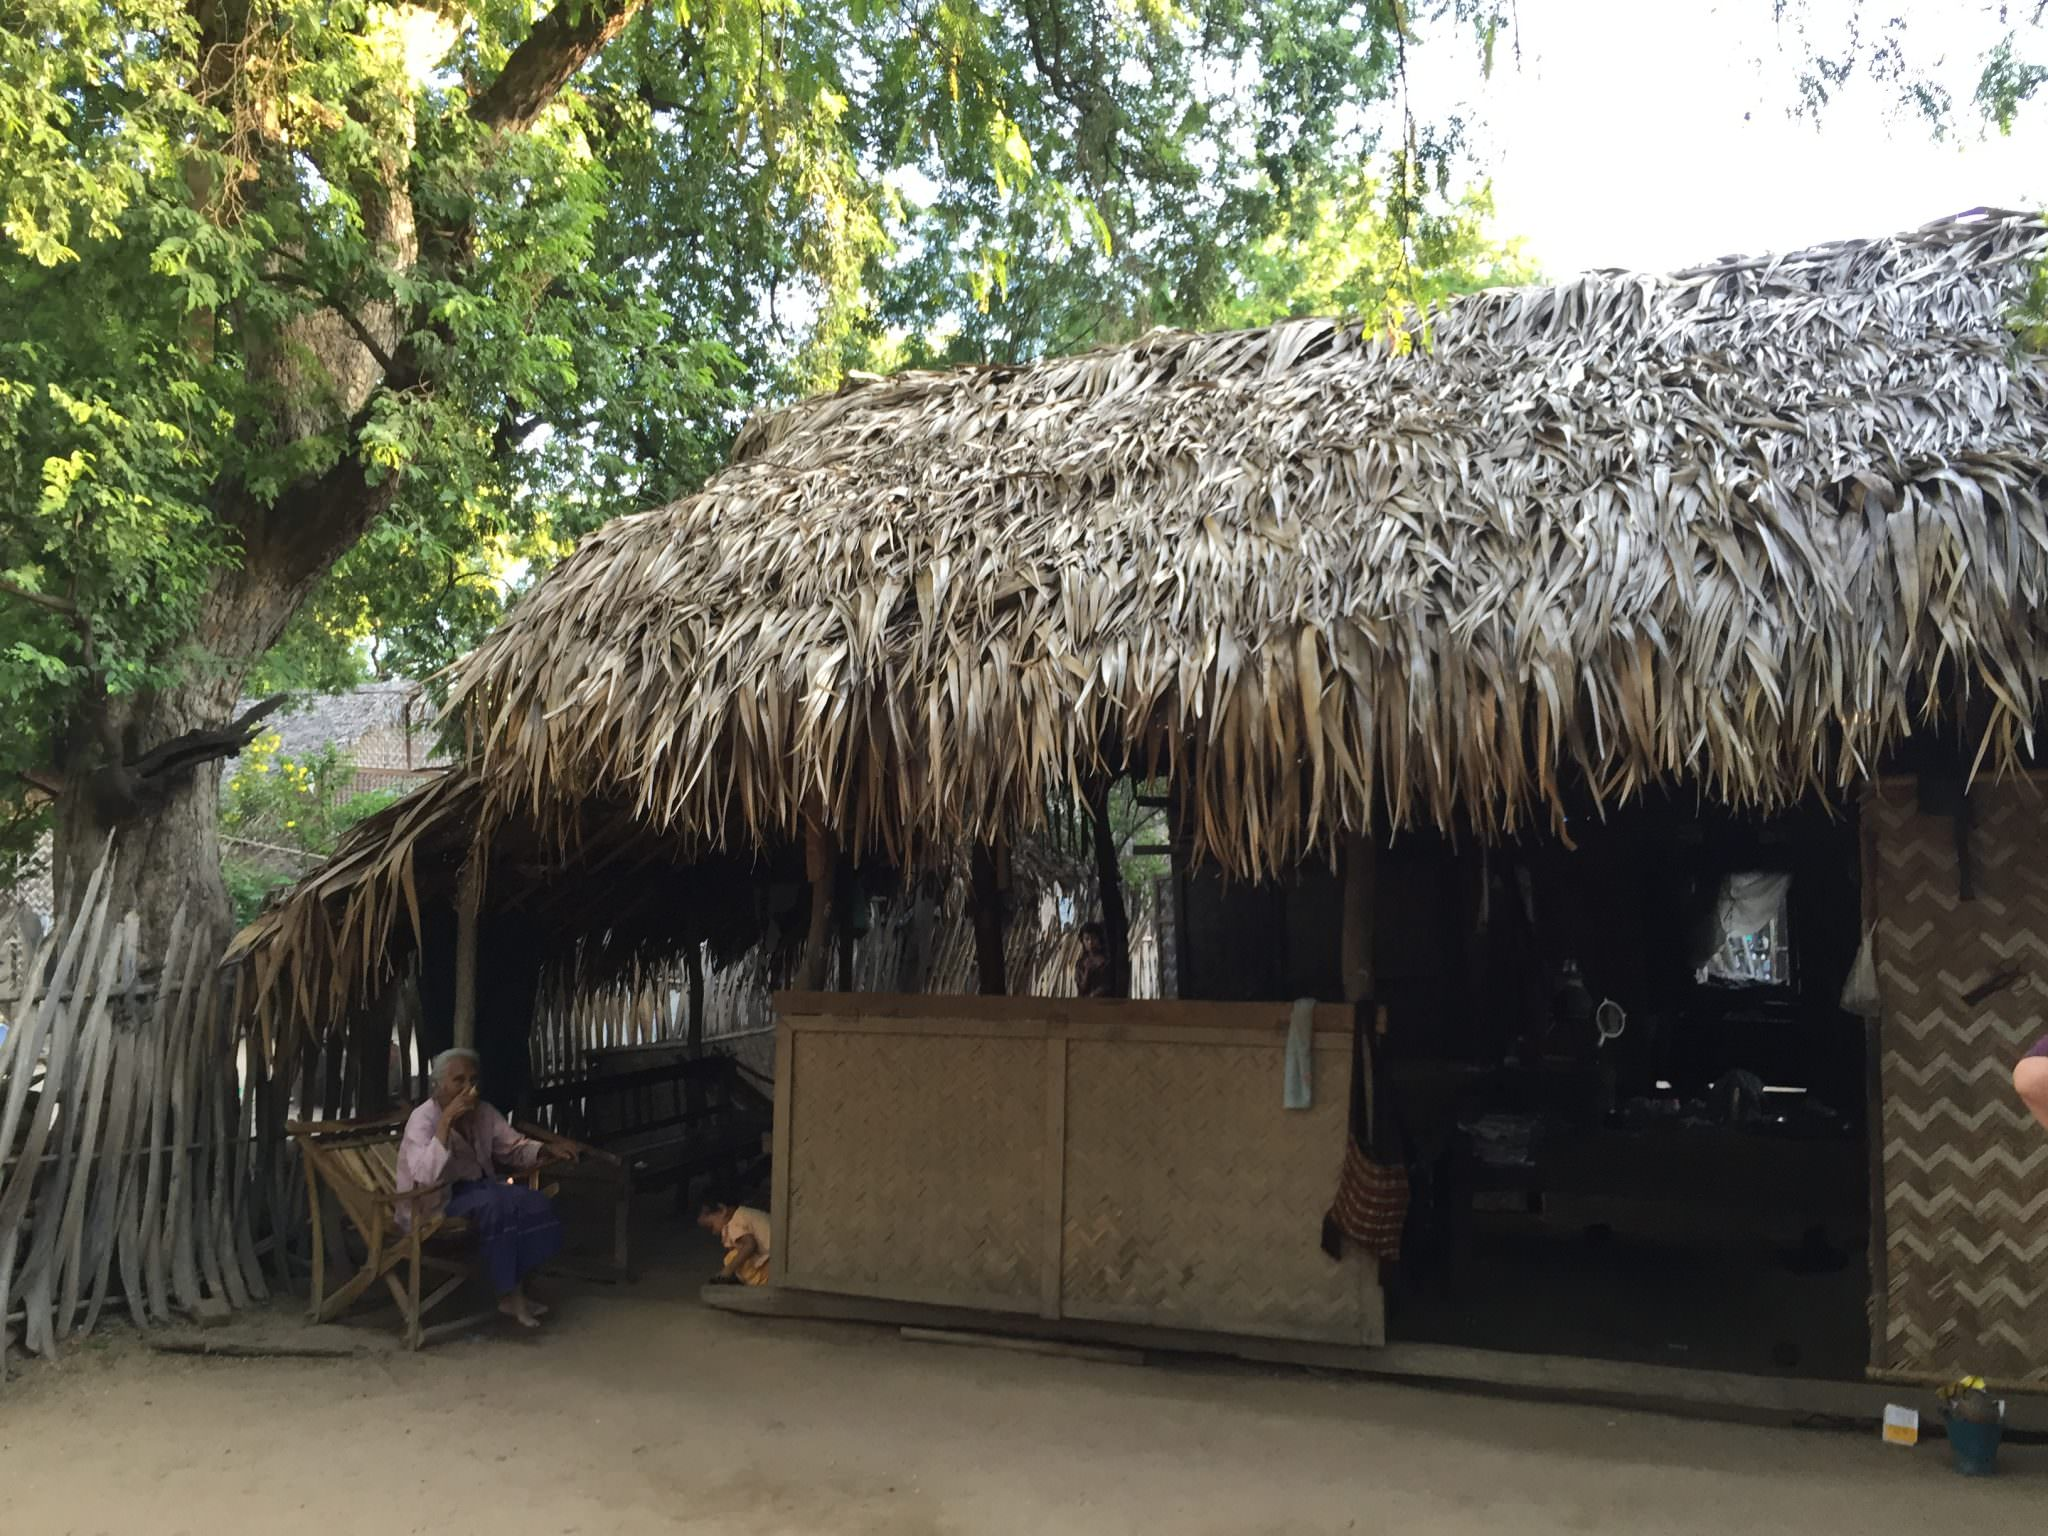 Every home looked the same, varying only in size. Thatched roofs, woven bamboo siding, no electricity or running water. © 2015 Gail Jessen